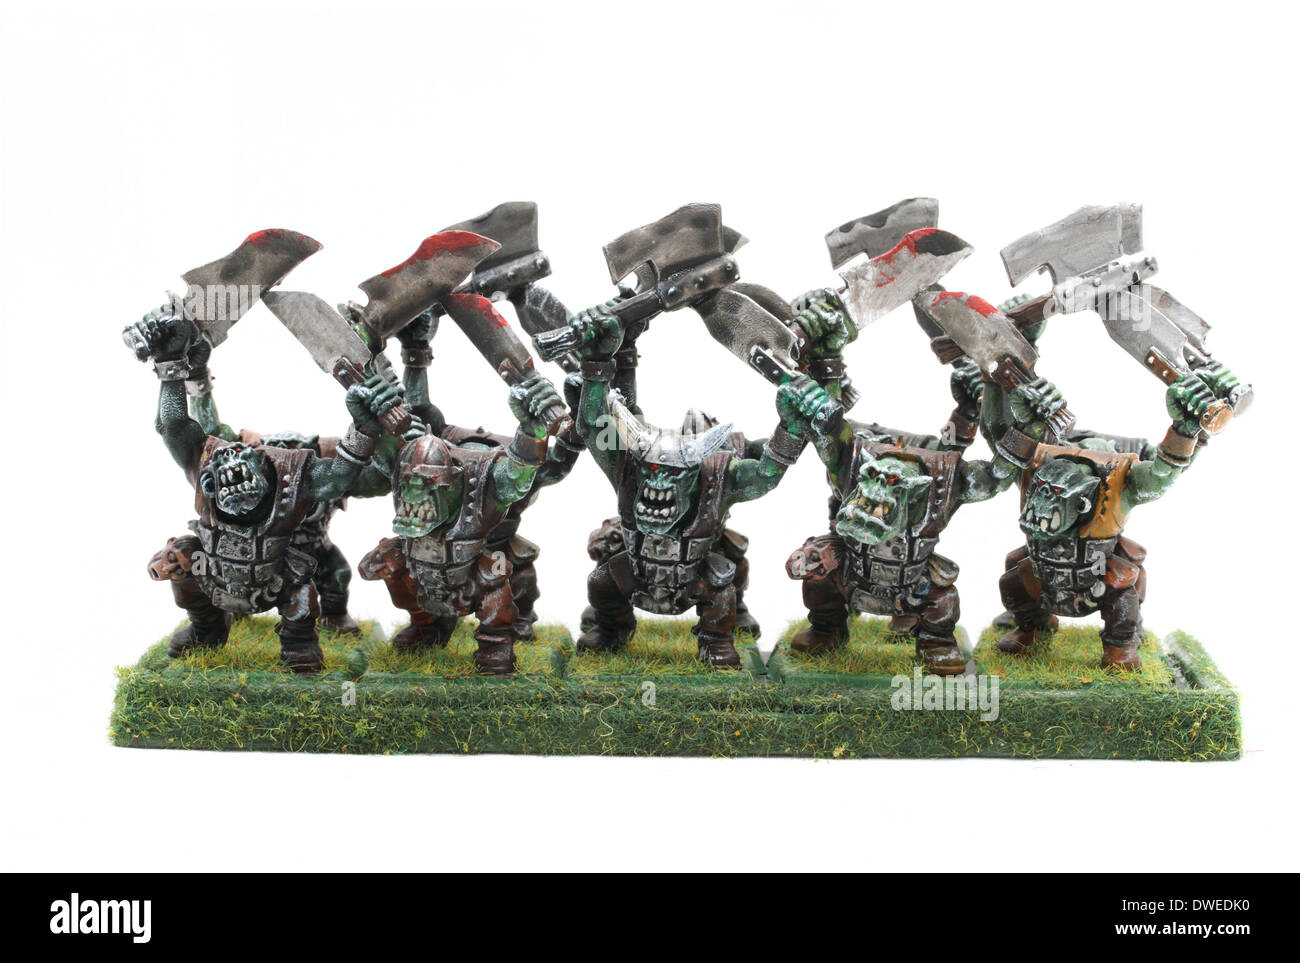 Warhammer Orcs And Goblins Ten Orc Boyz With Two Hand